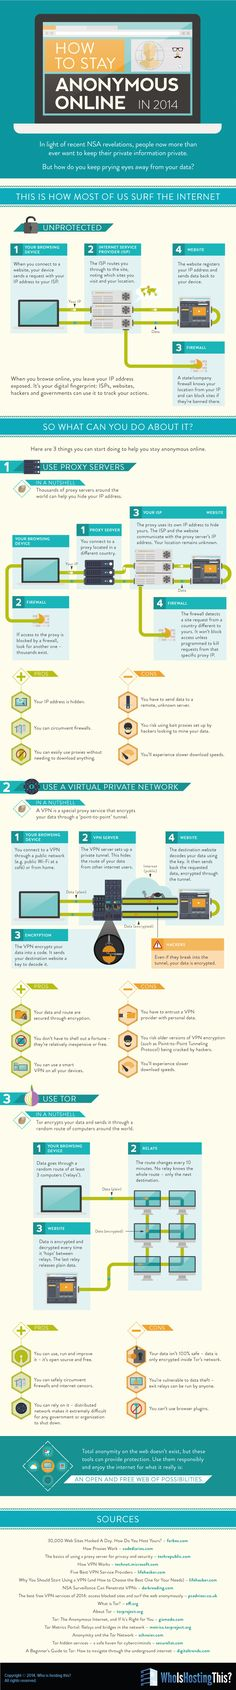 """How to stay anonymous online"" I can see how remaining anonymous on the internet would be beneficial for internet pirates, but for the rest of the law-abiding world, some people just want to protect their information. This infographic explains a few of the easiest ways to do that."